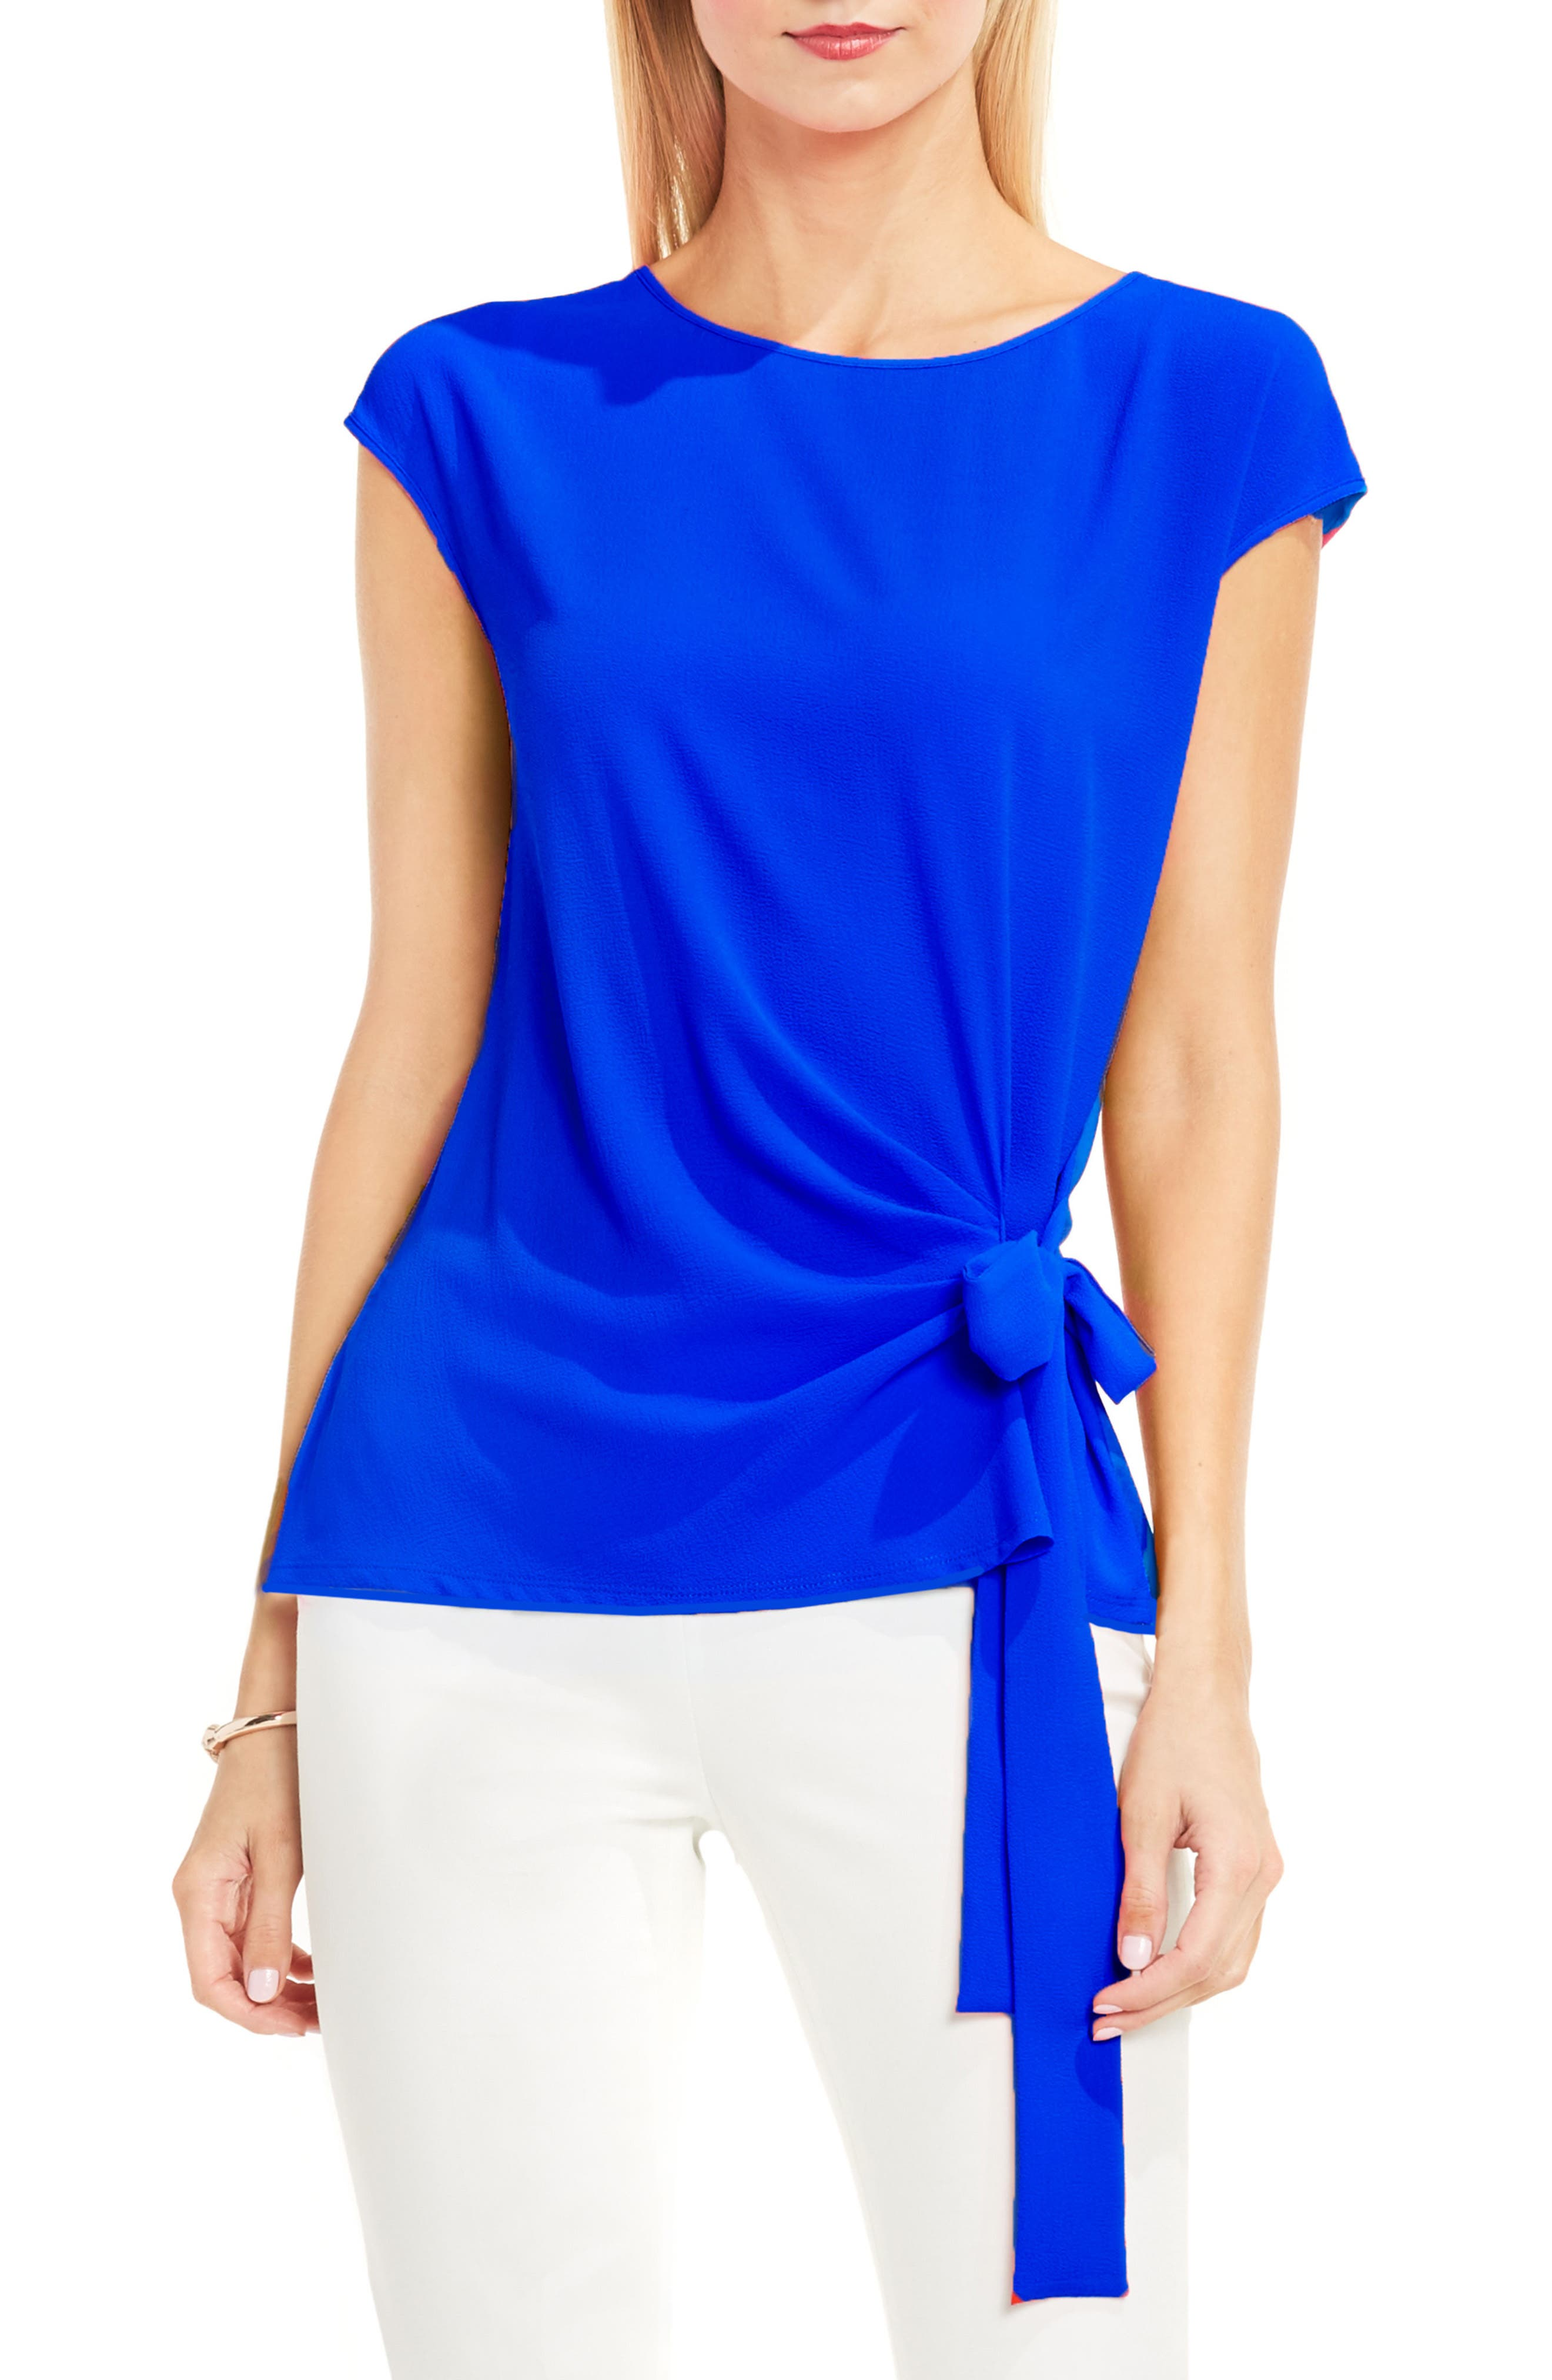 Main Image - Vince Camuto Mixed Media Tie Front Blouse (Regular & Petite)